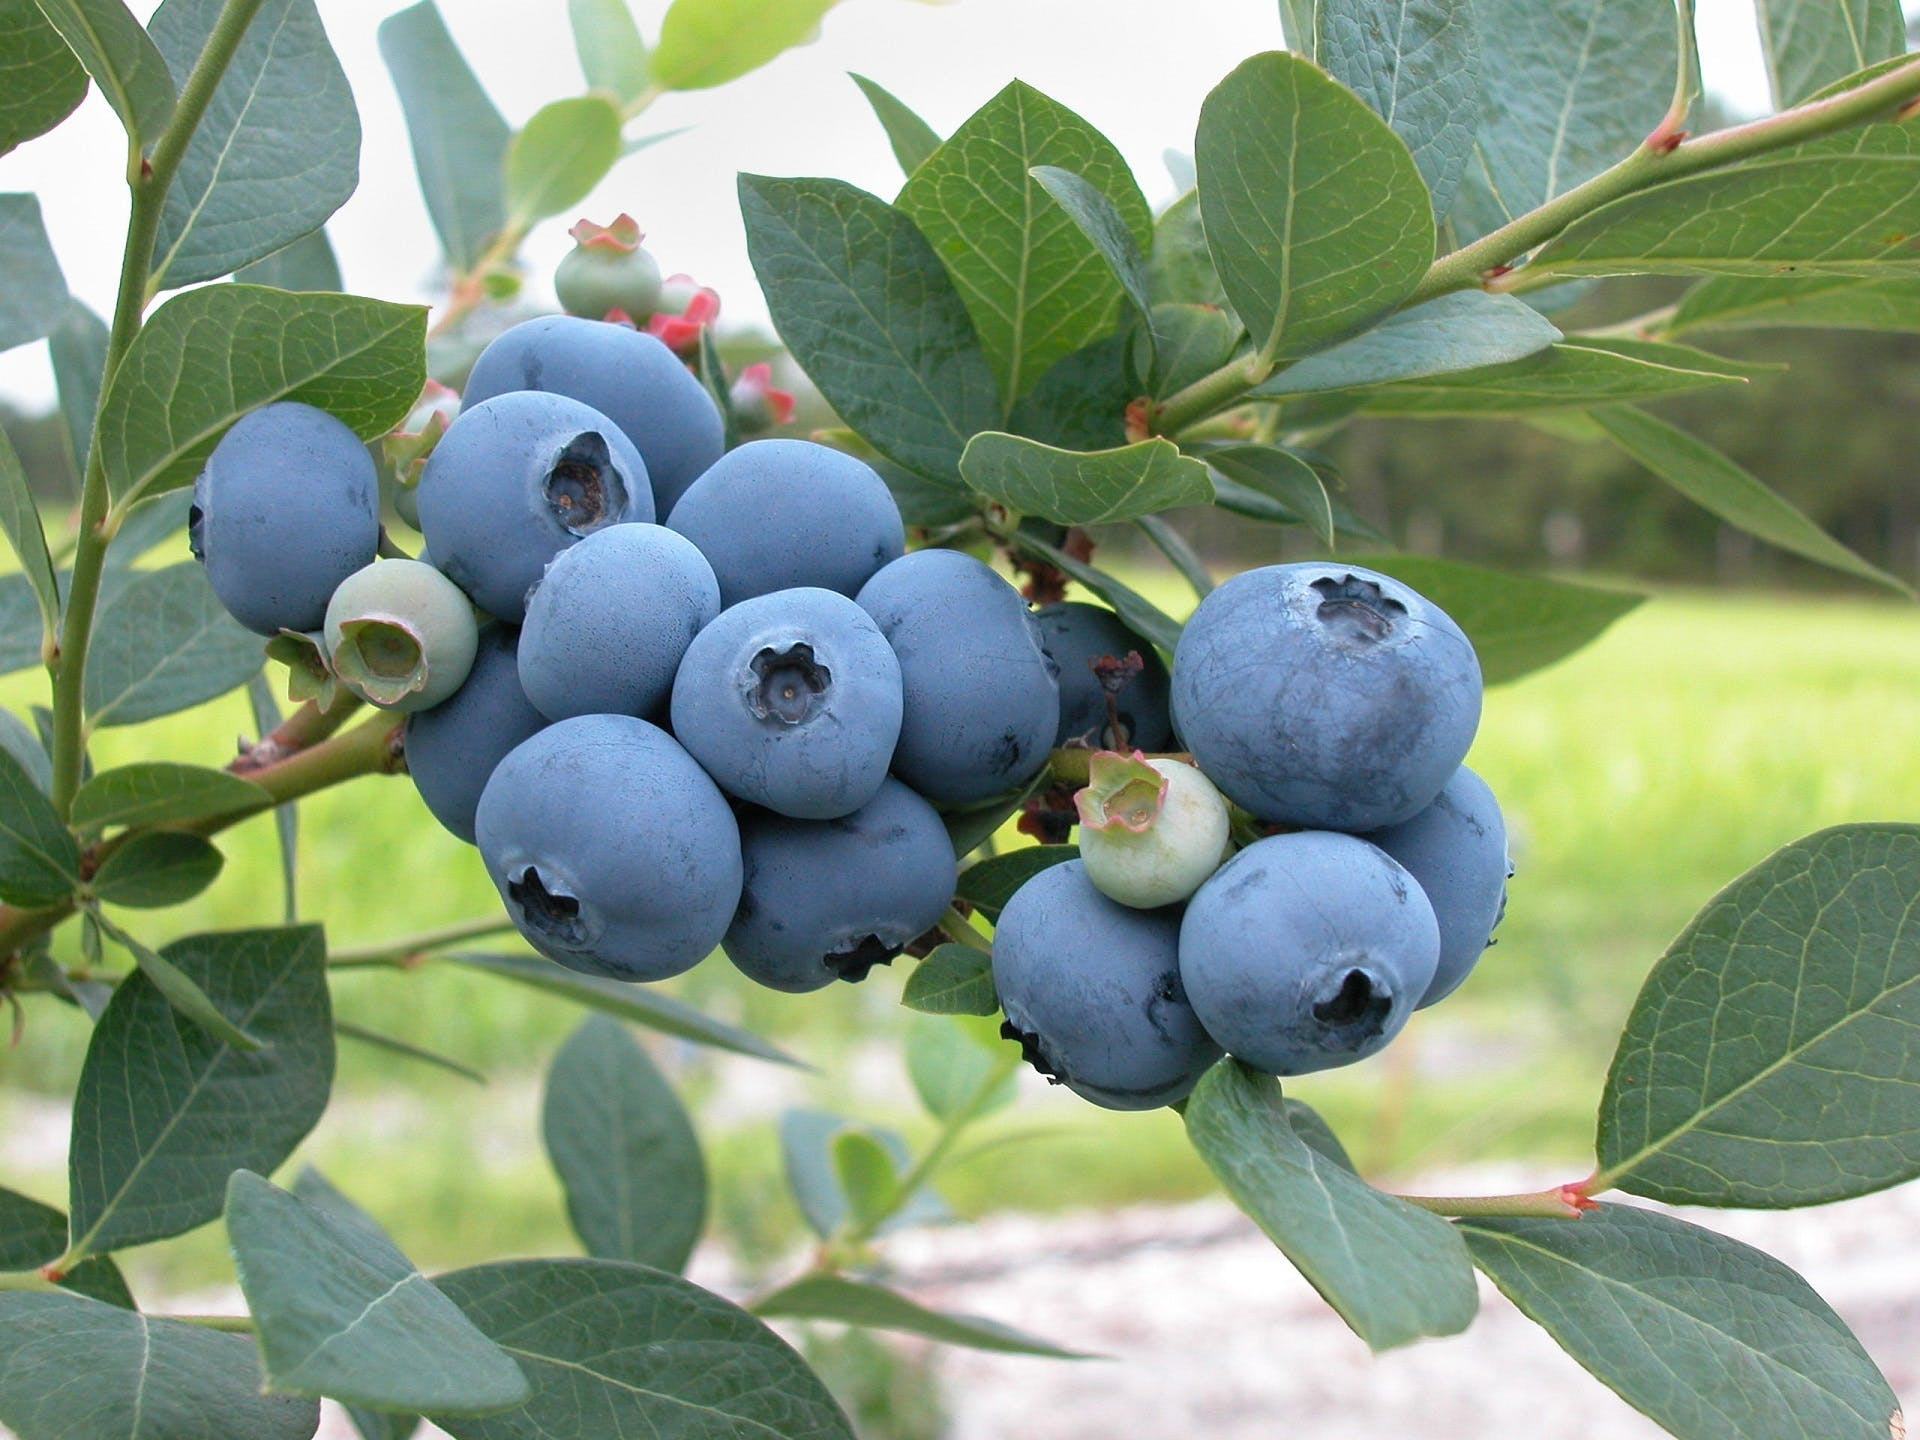 Free stock photo of food, bush, plant, blueberries